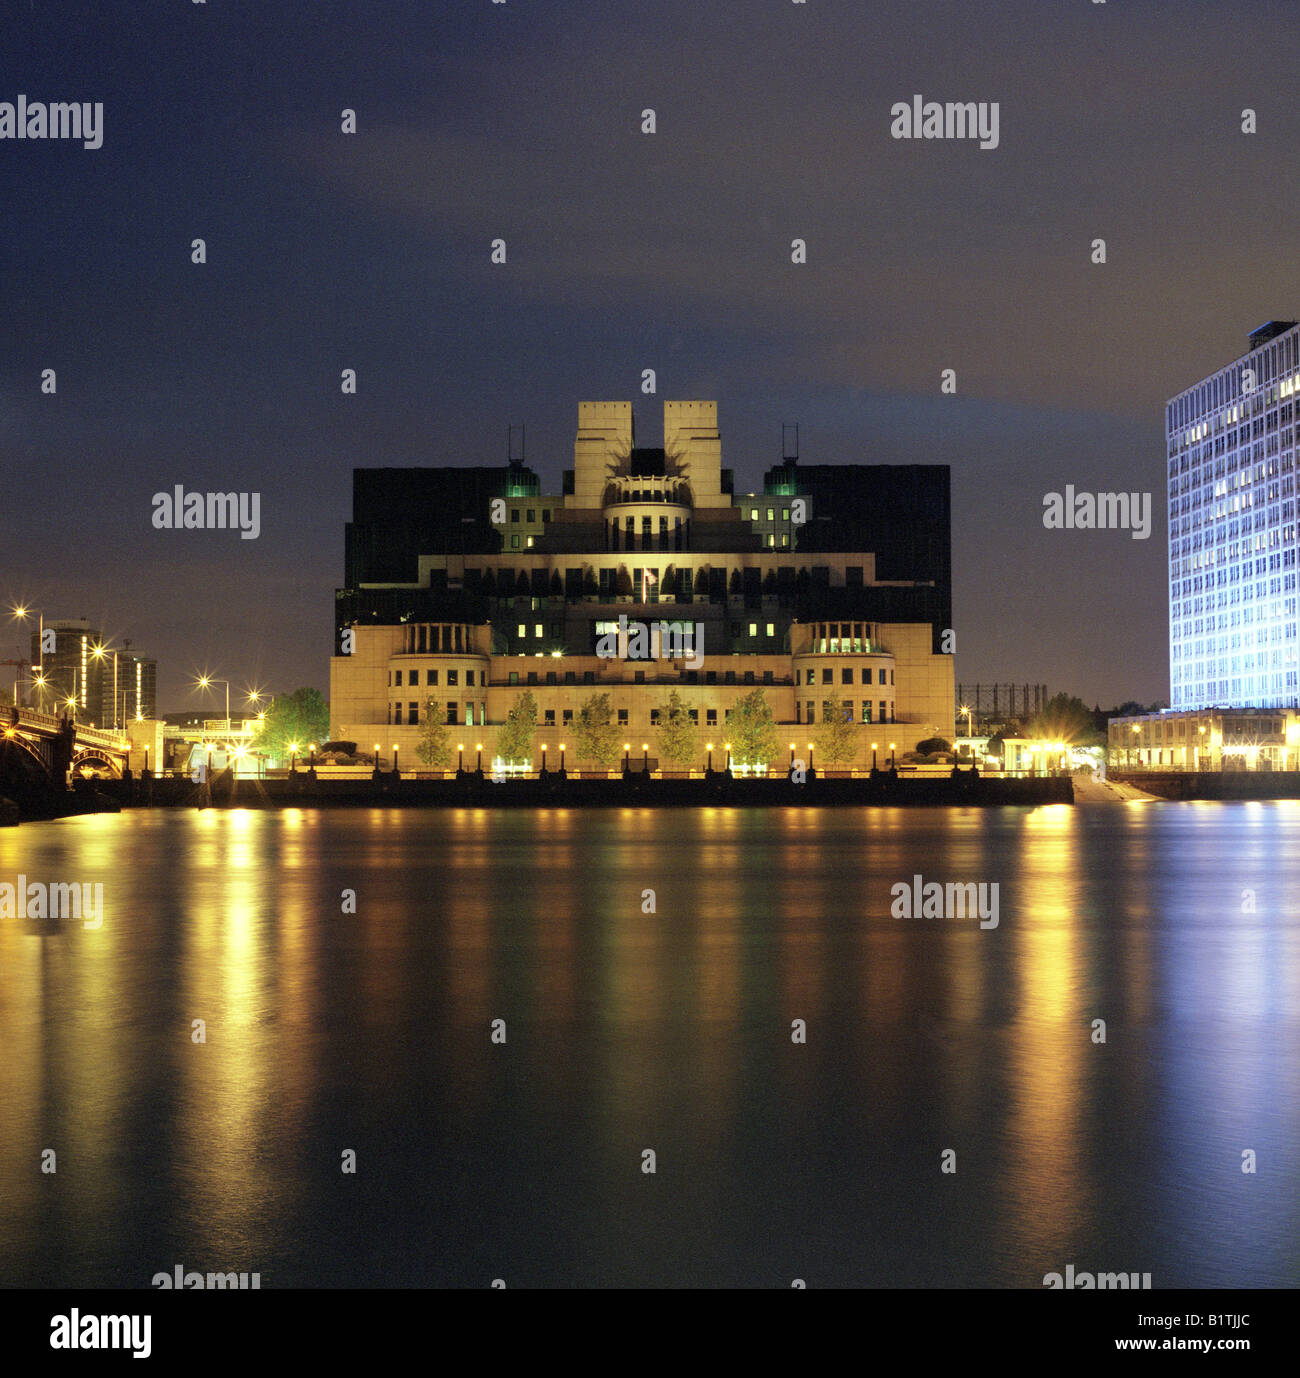 the MI6 building at Vauxhall cross at night - Stock Image